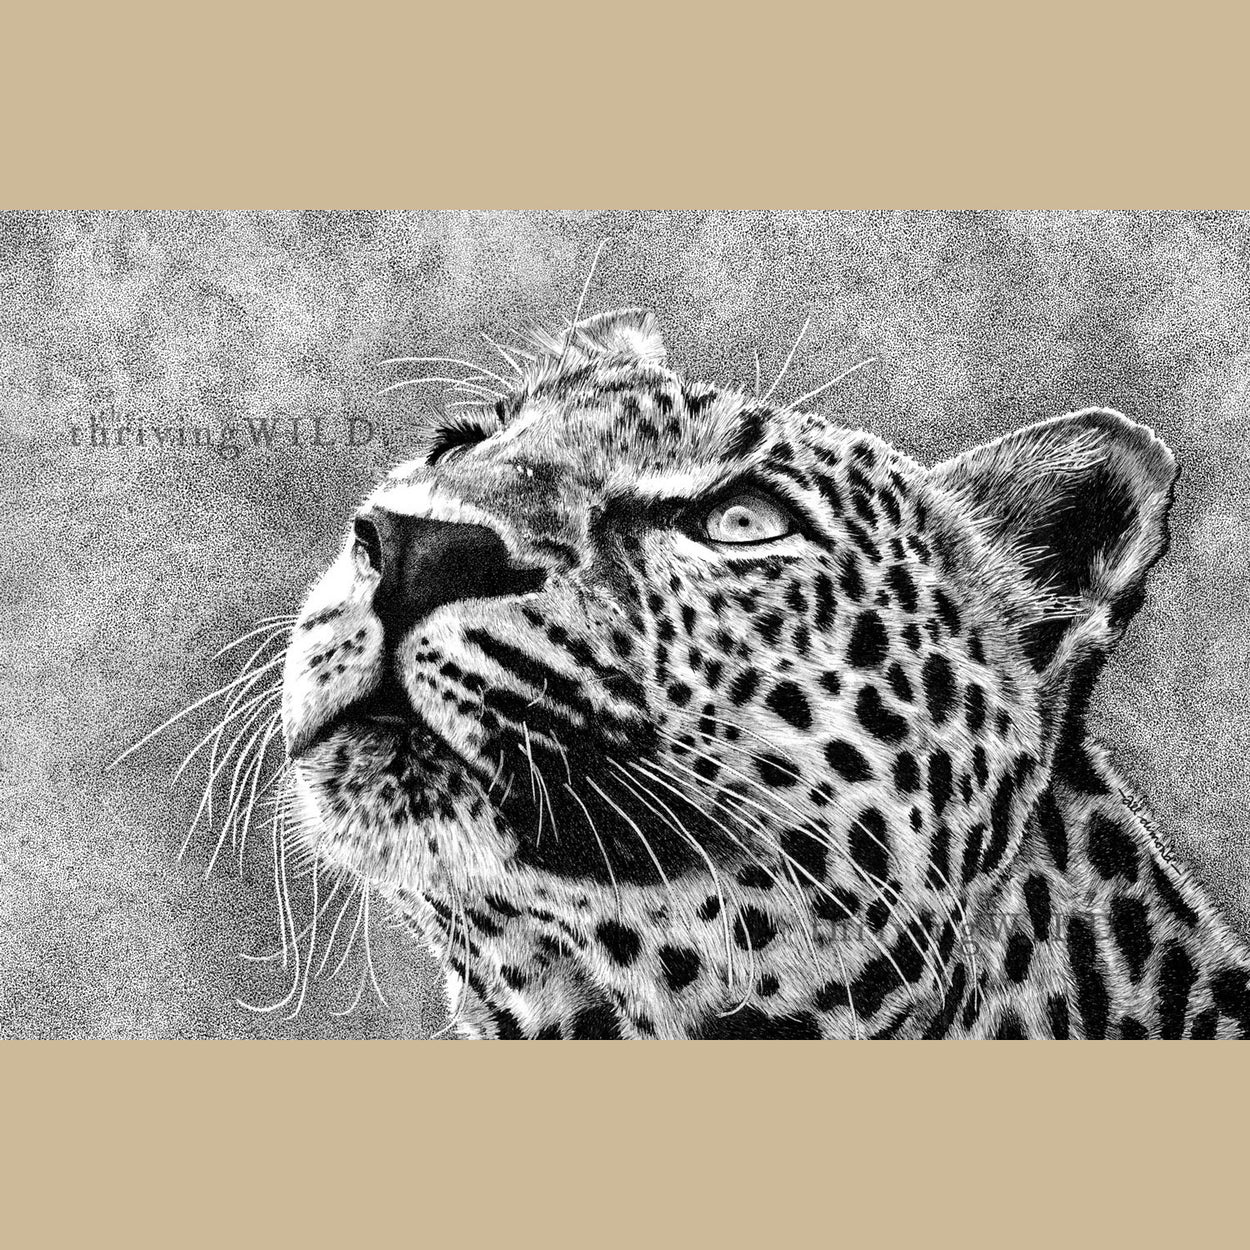 Leopard Pen Drawing Wildlife - The Thriving Wild